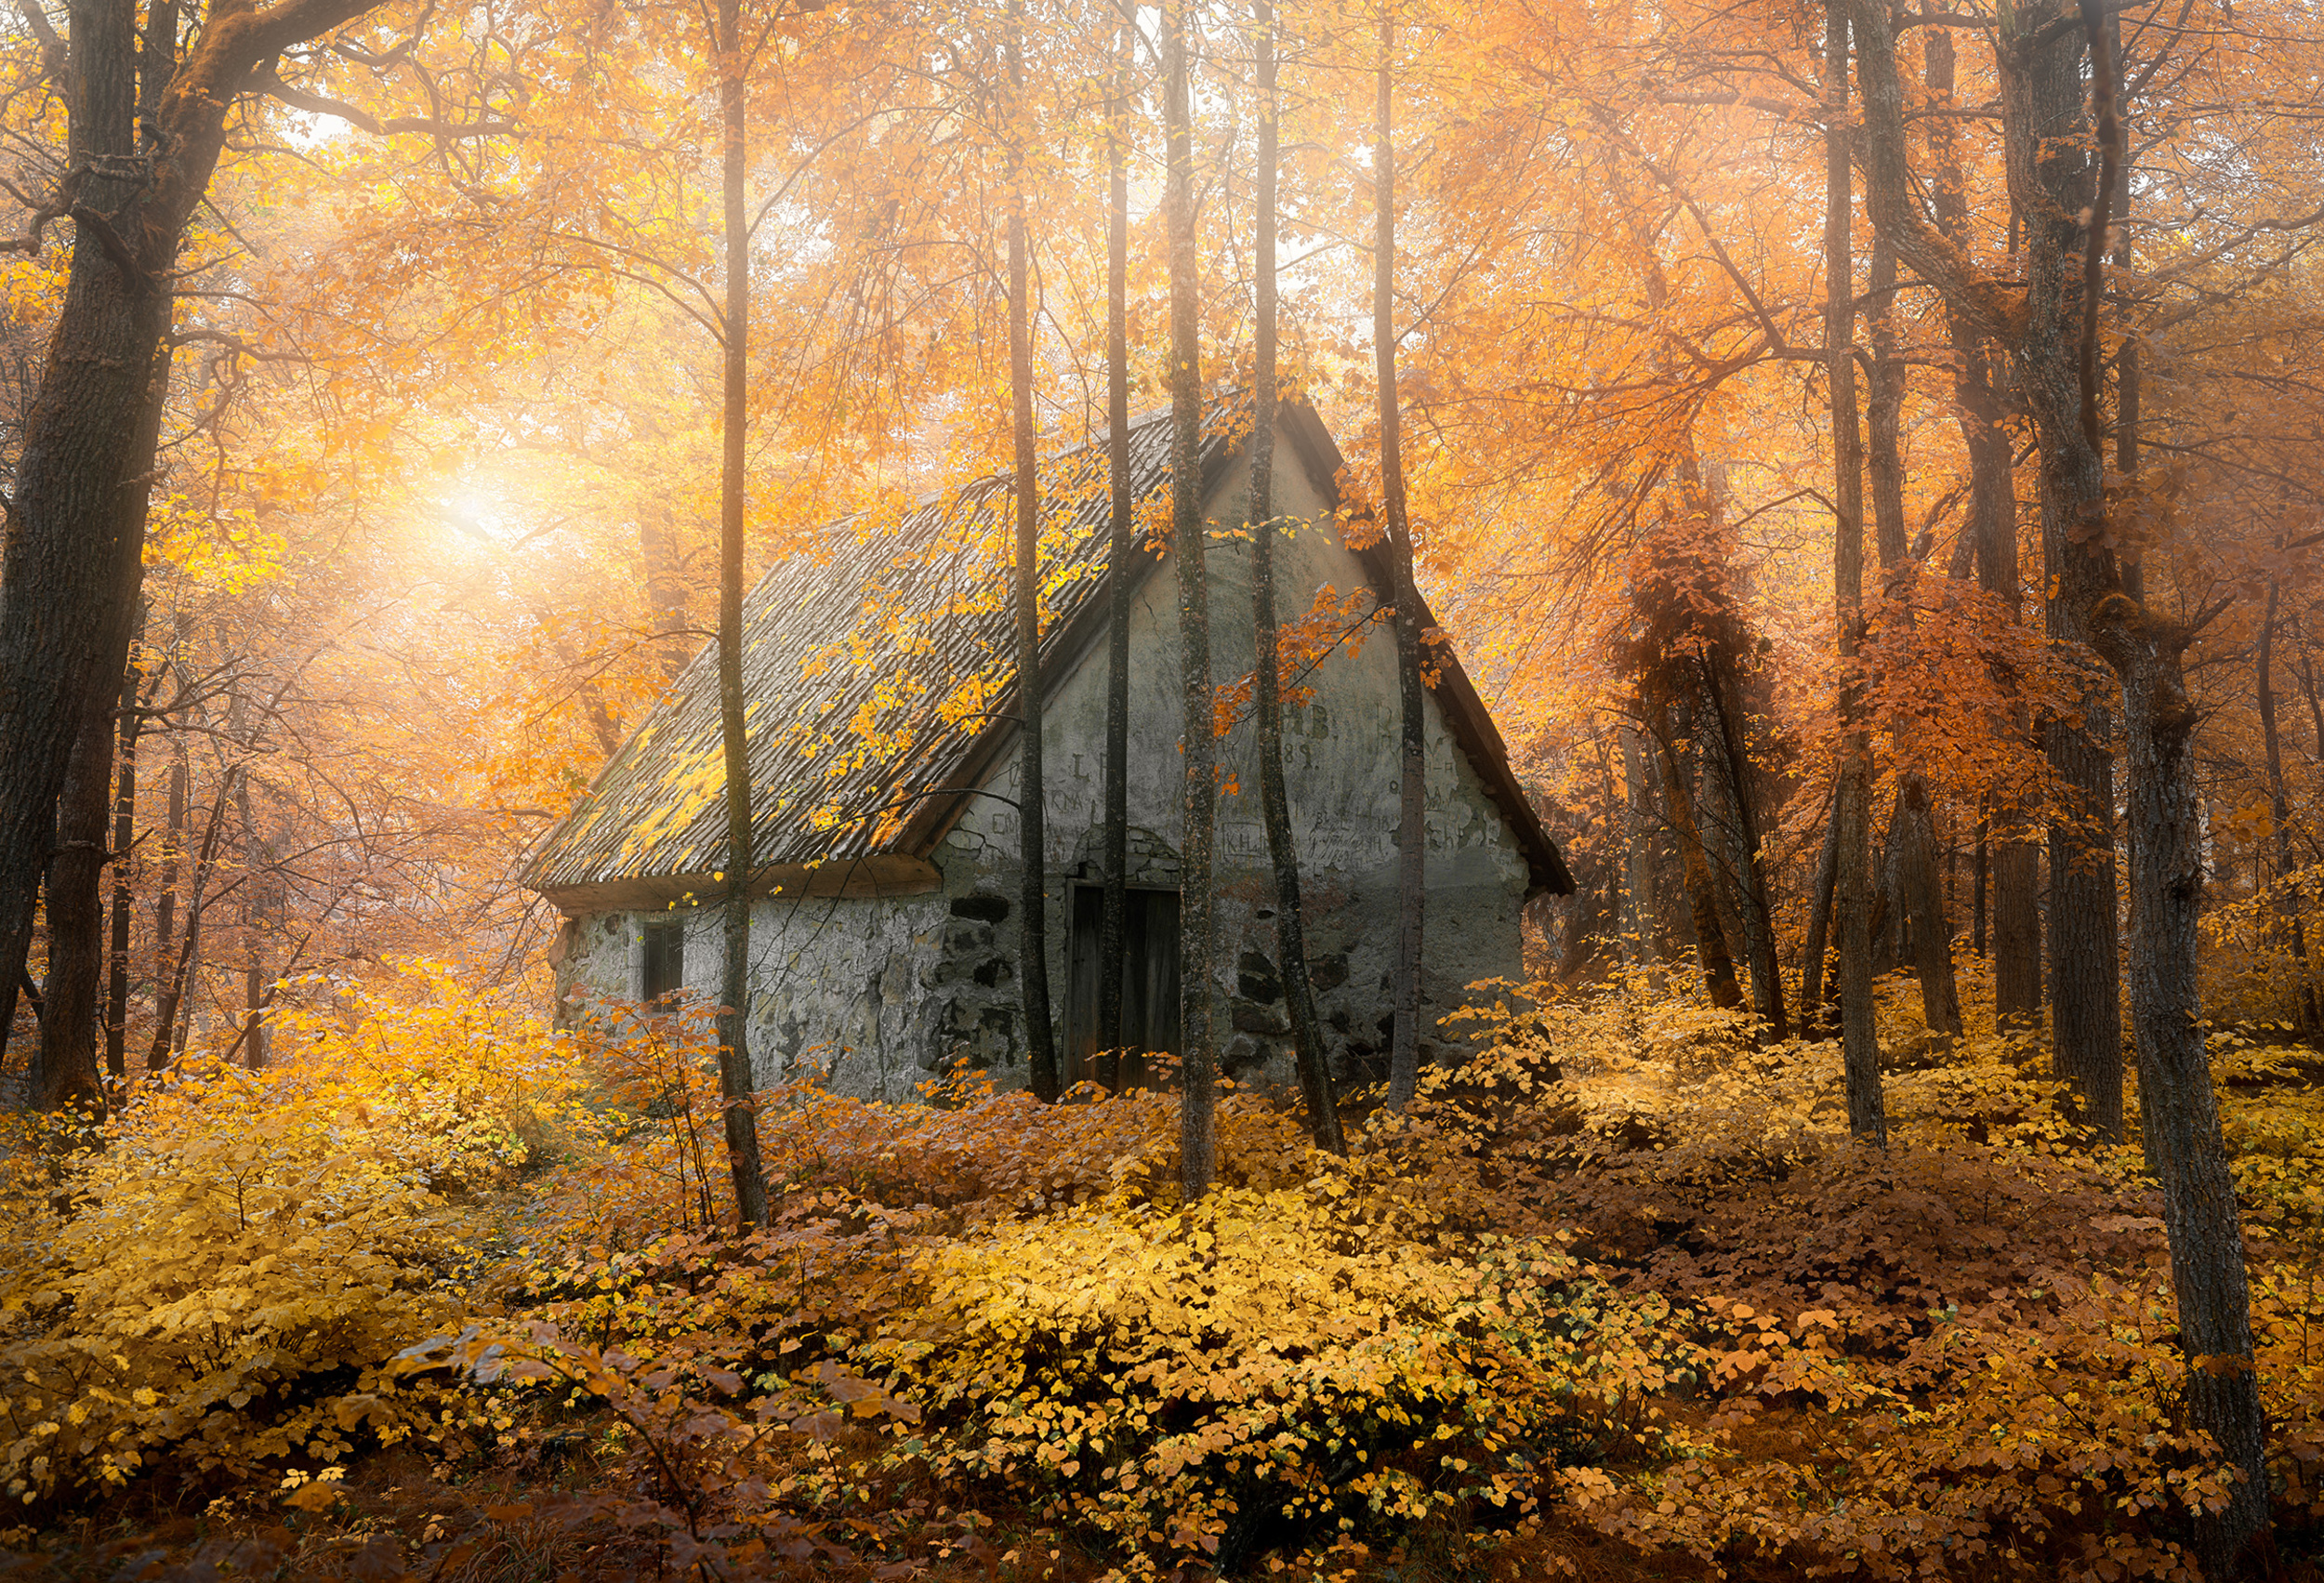 House in the forest during fal